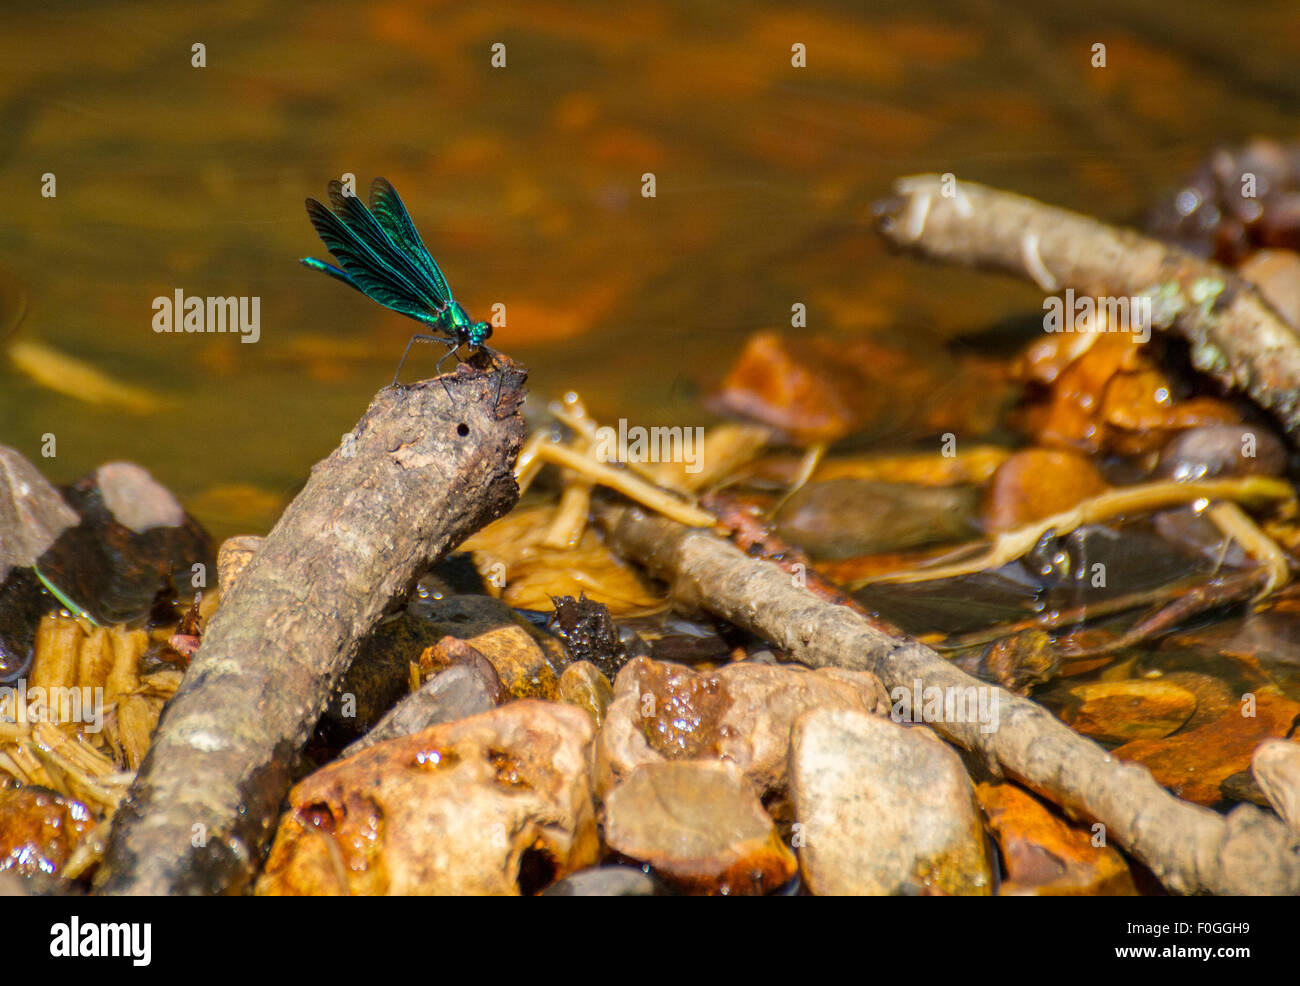 colourful dragonfly on twig and stones in river - Stock Image